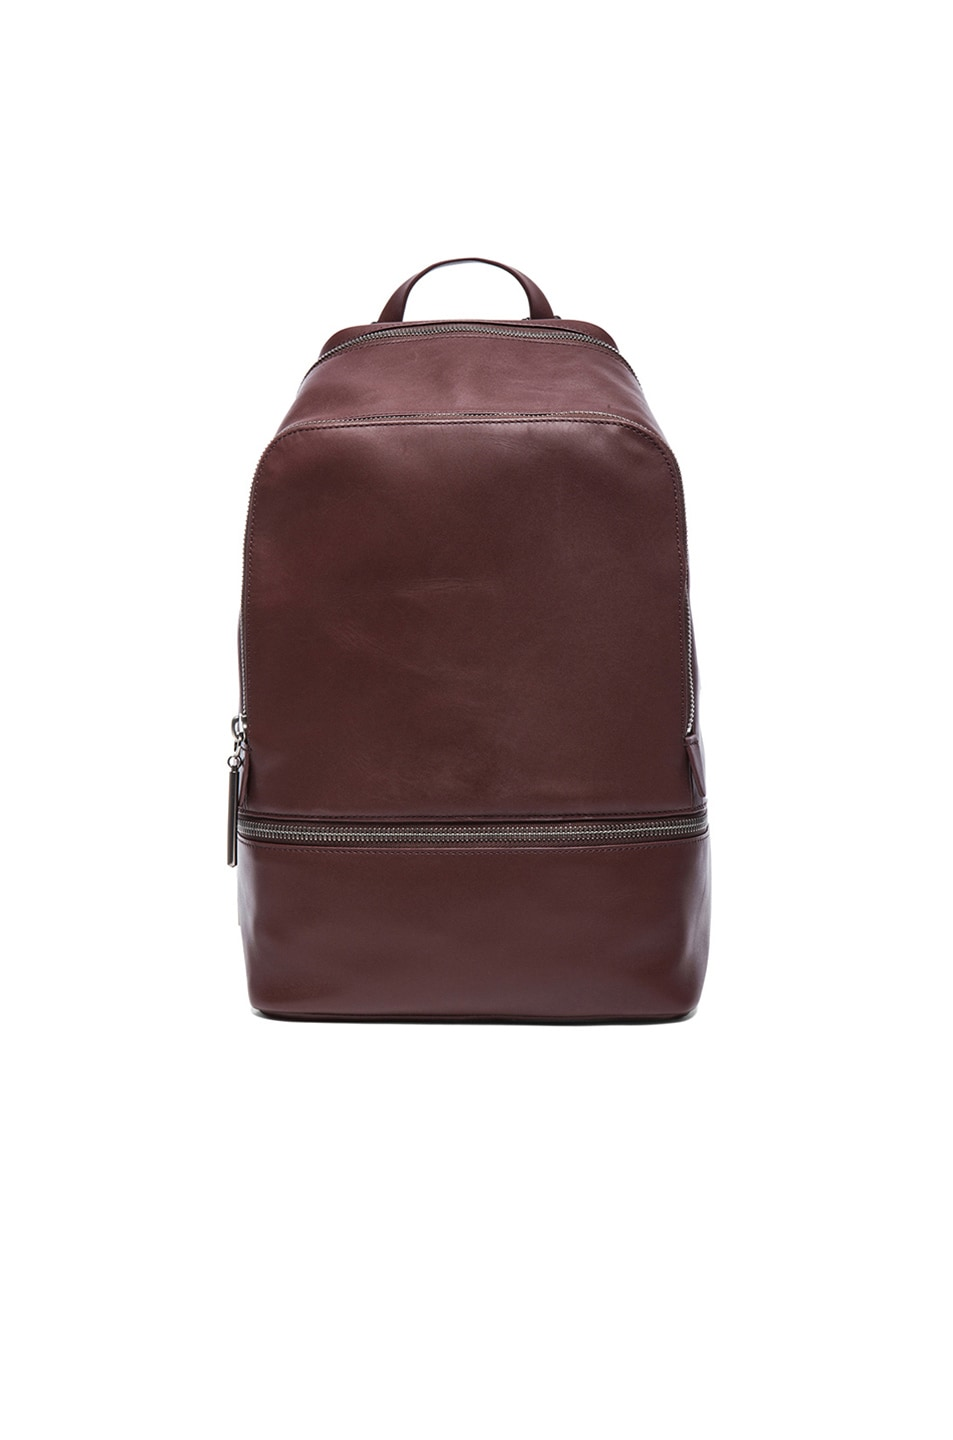 Image 1 of 3.1 phillip lim 31 Hour Zip Around Backpack in Mahogany & Gunmetal